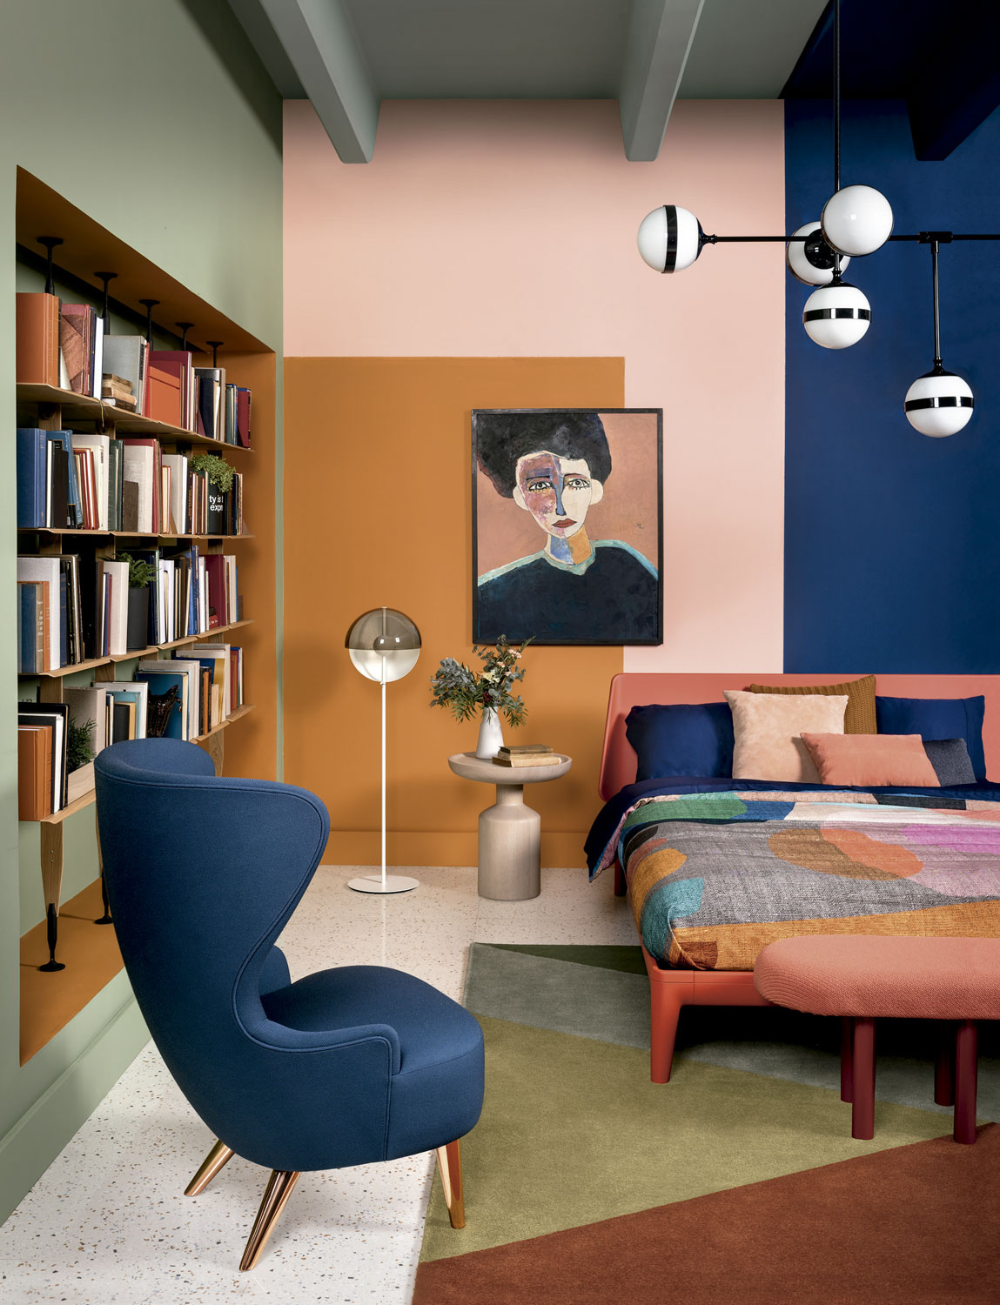 Photo of Pantone color of the year 2020: Classic Blue in interior design